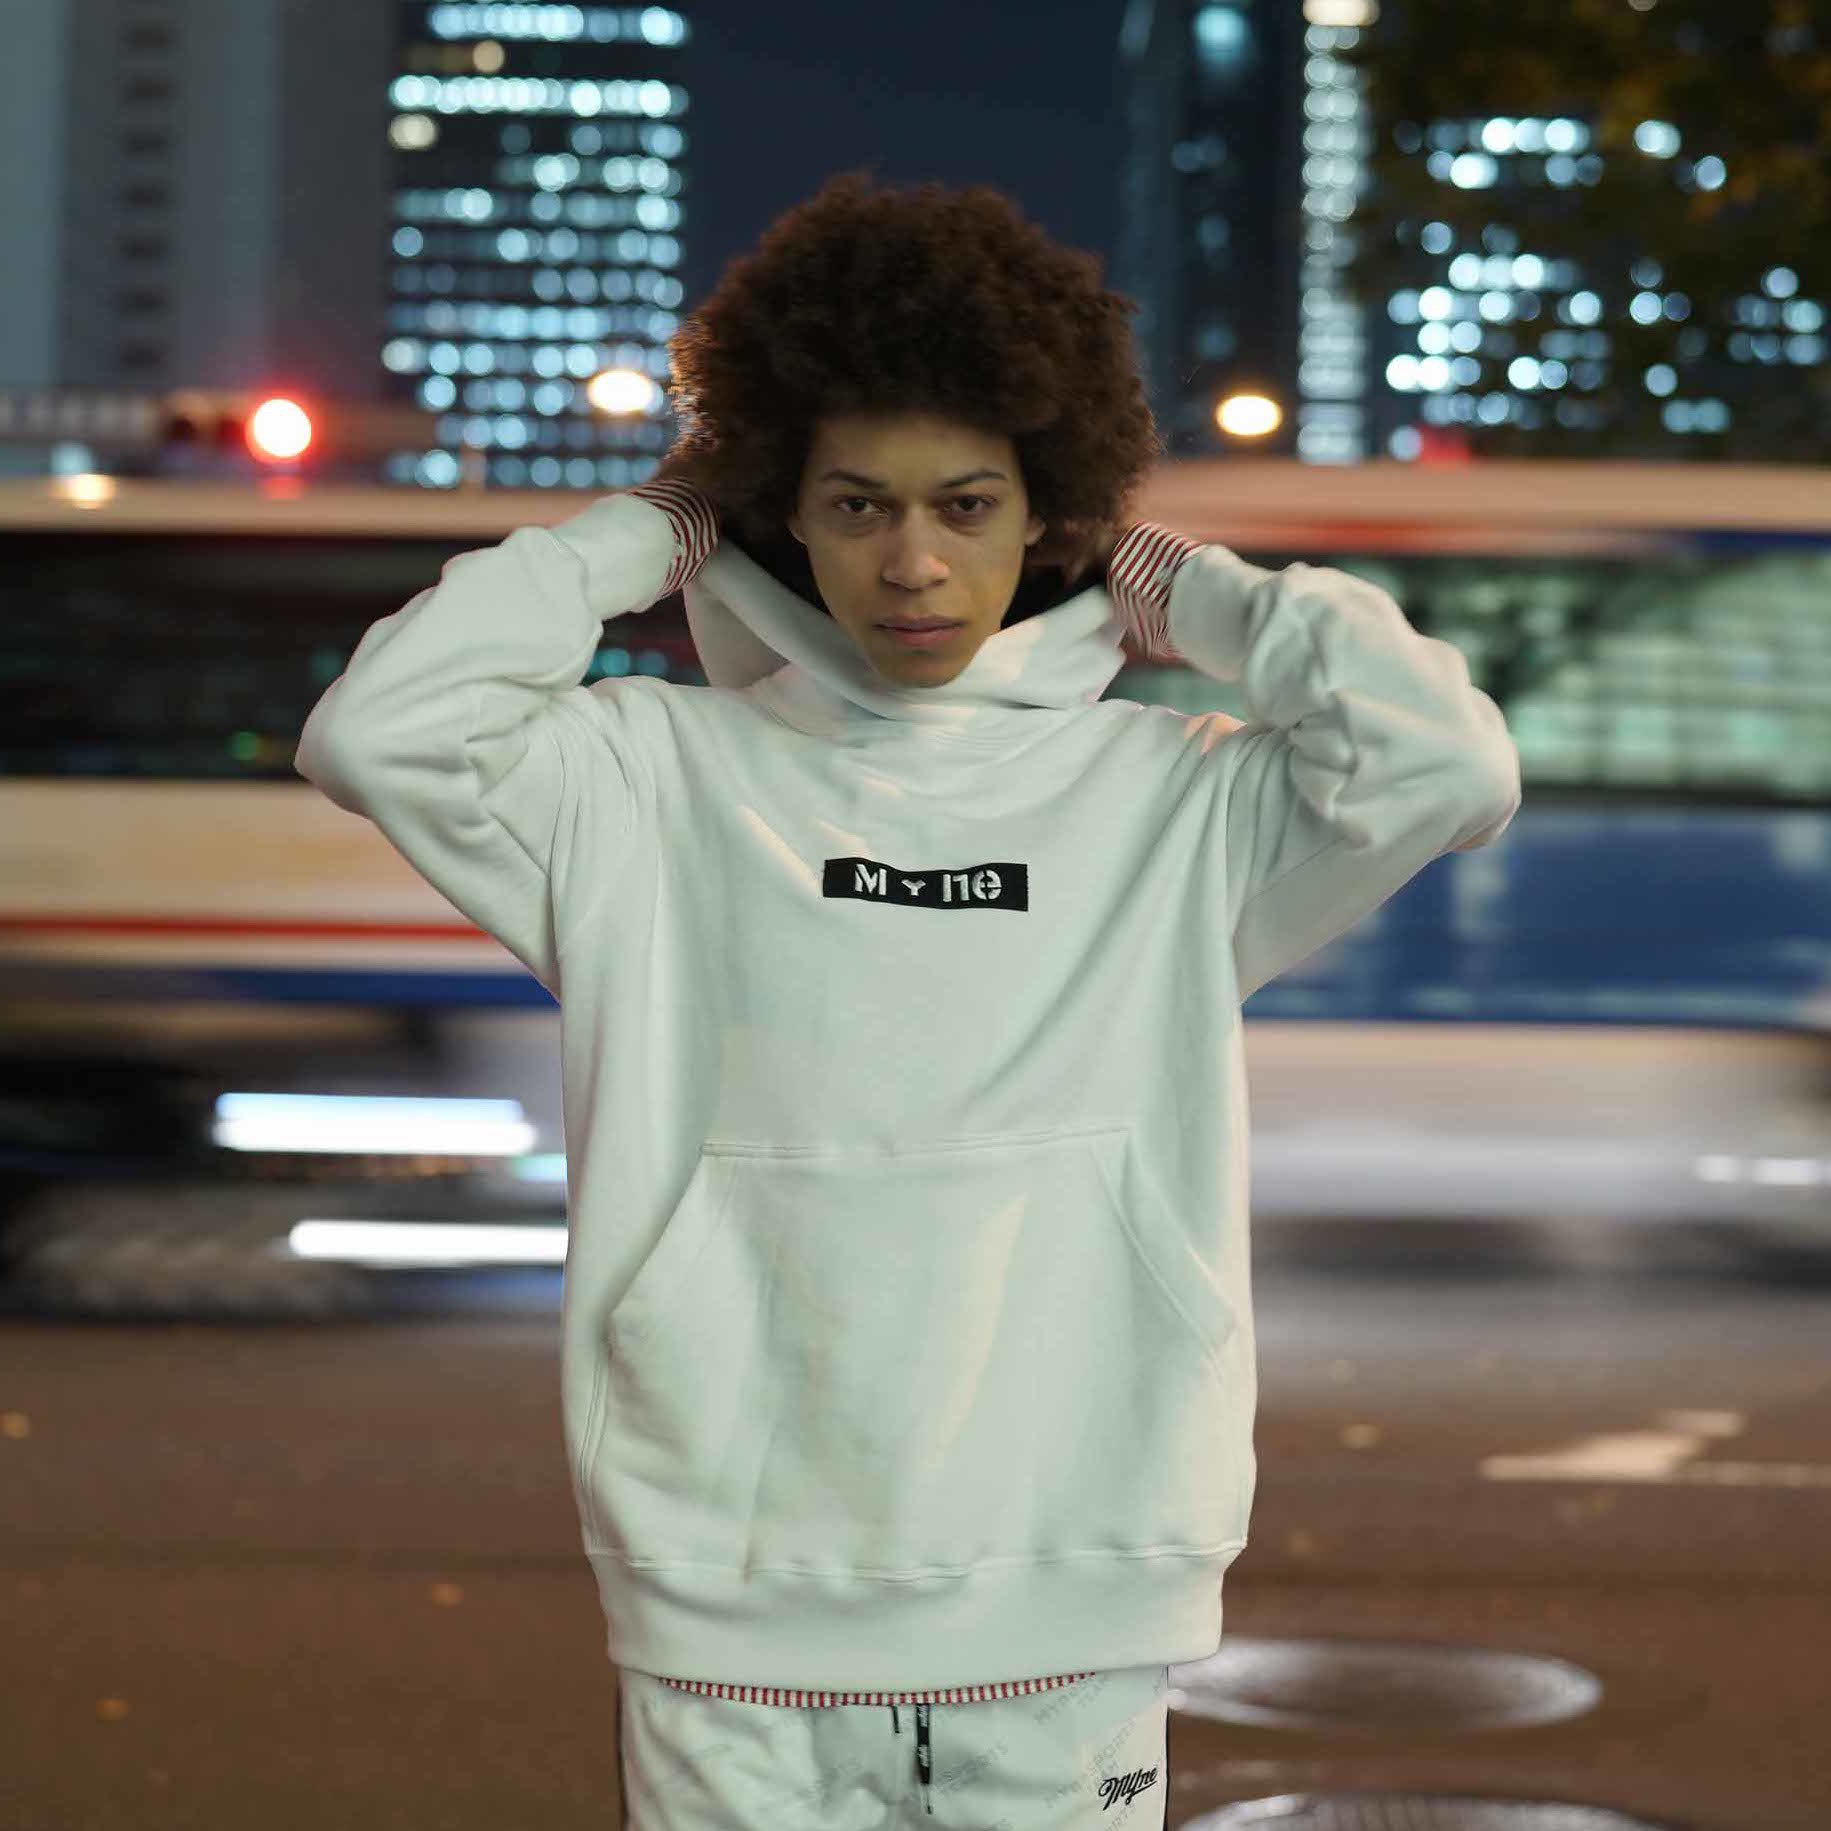 M+ne MAGIC TAPE HOODIE / WHITE - 画像3